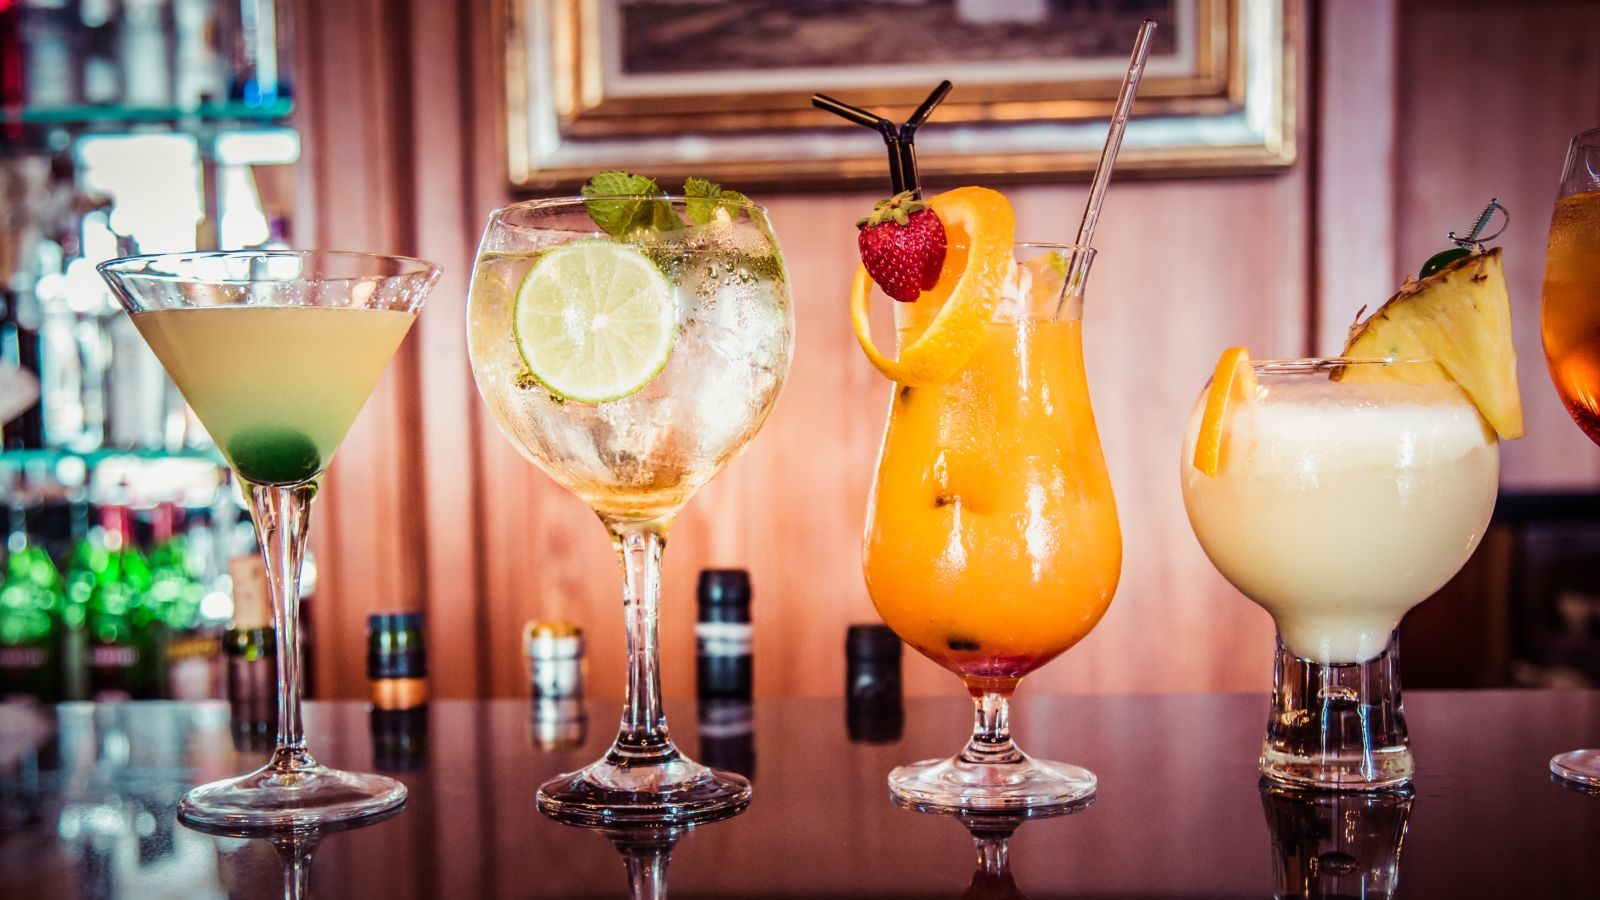 Discover our cocktails and menu at Bar Armas | Castillo Hotel Son Vida